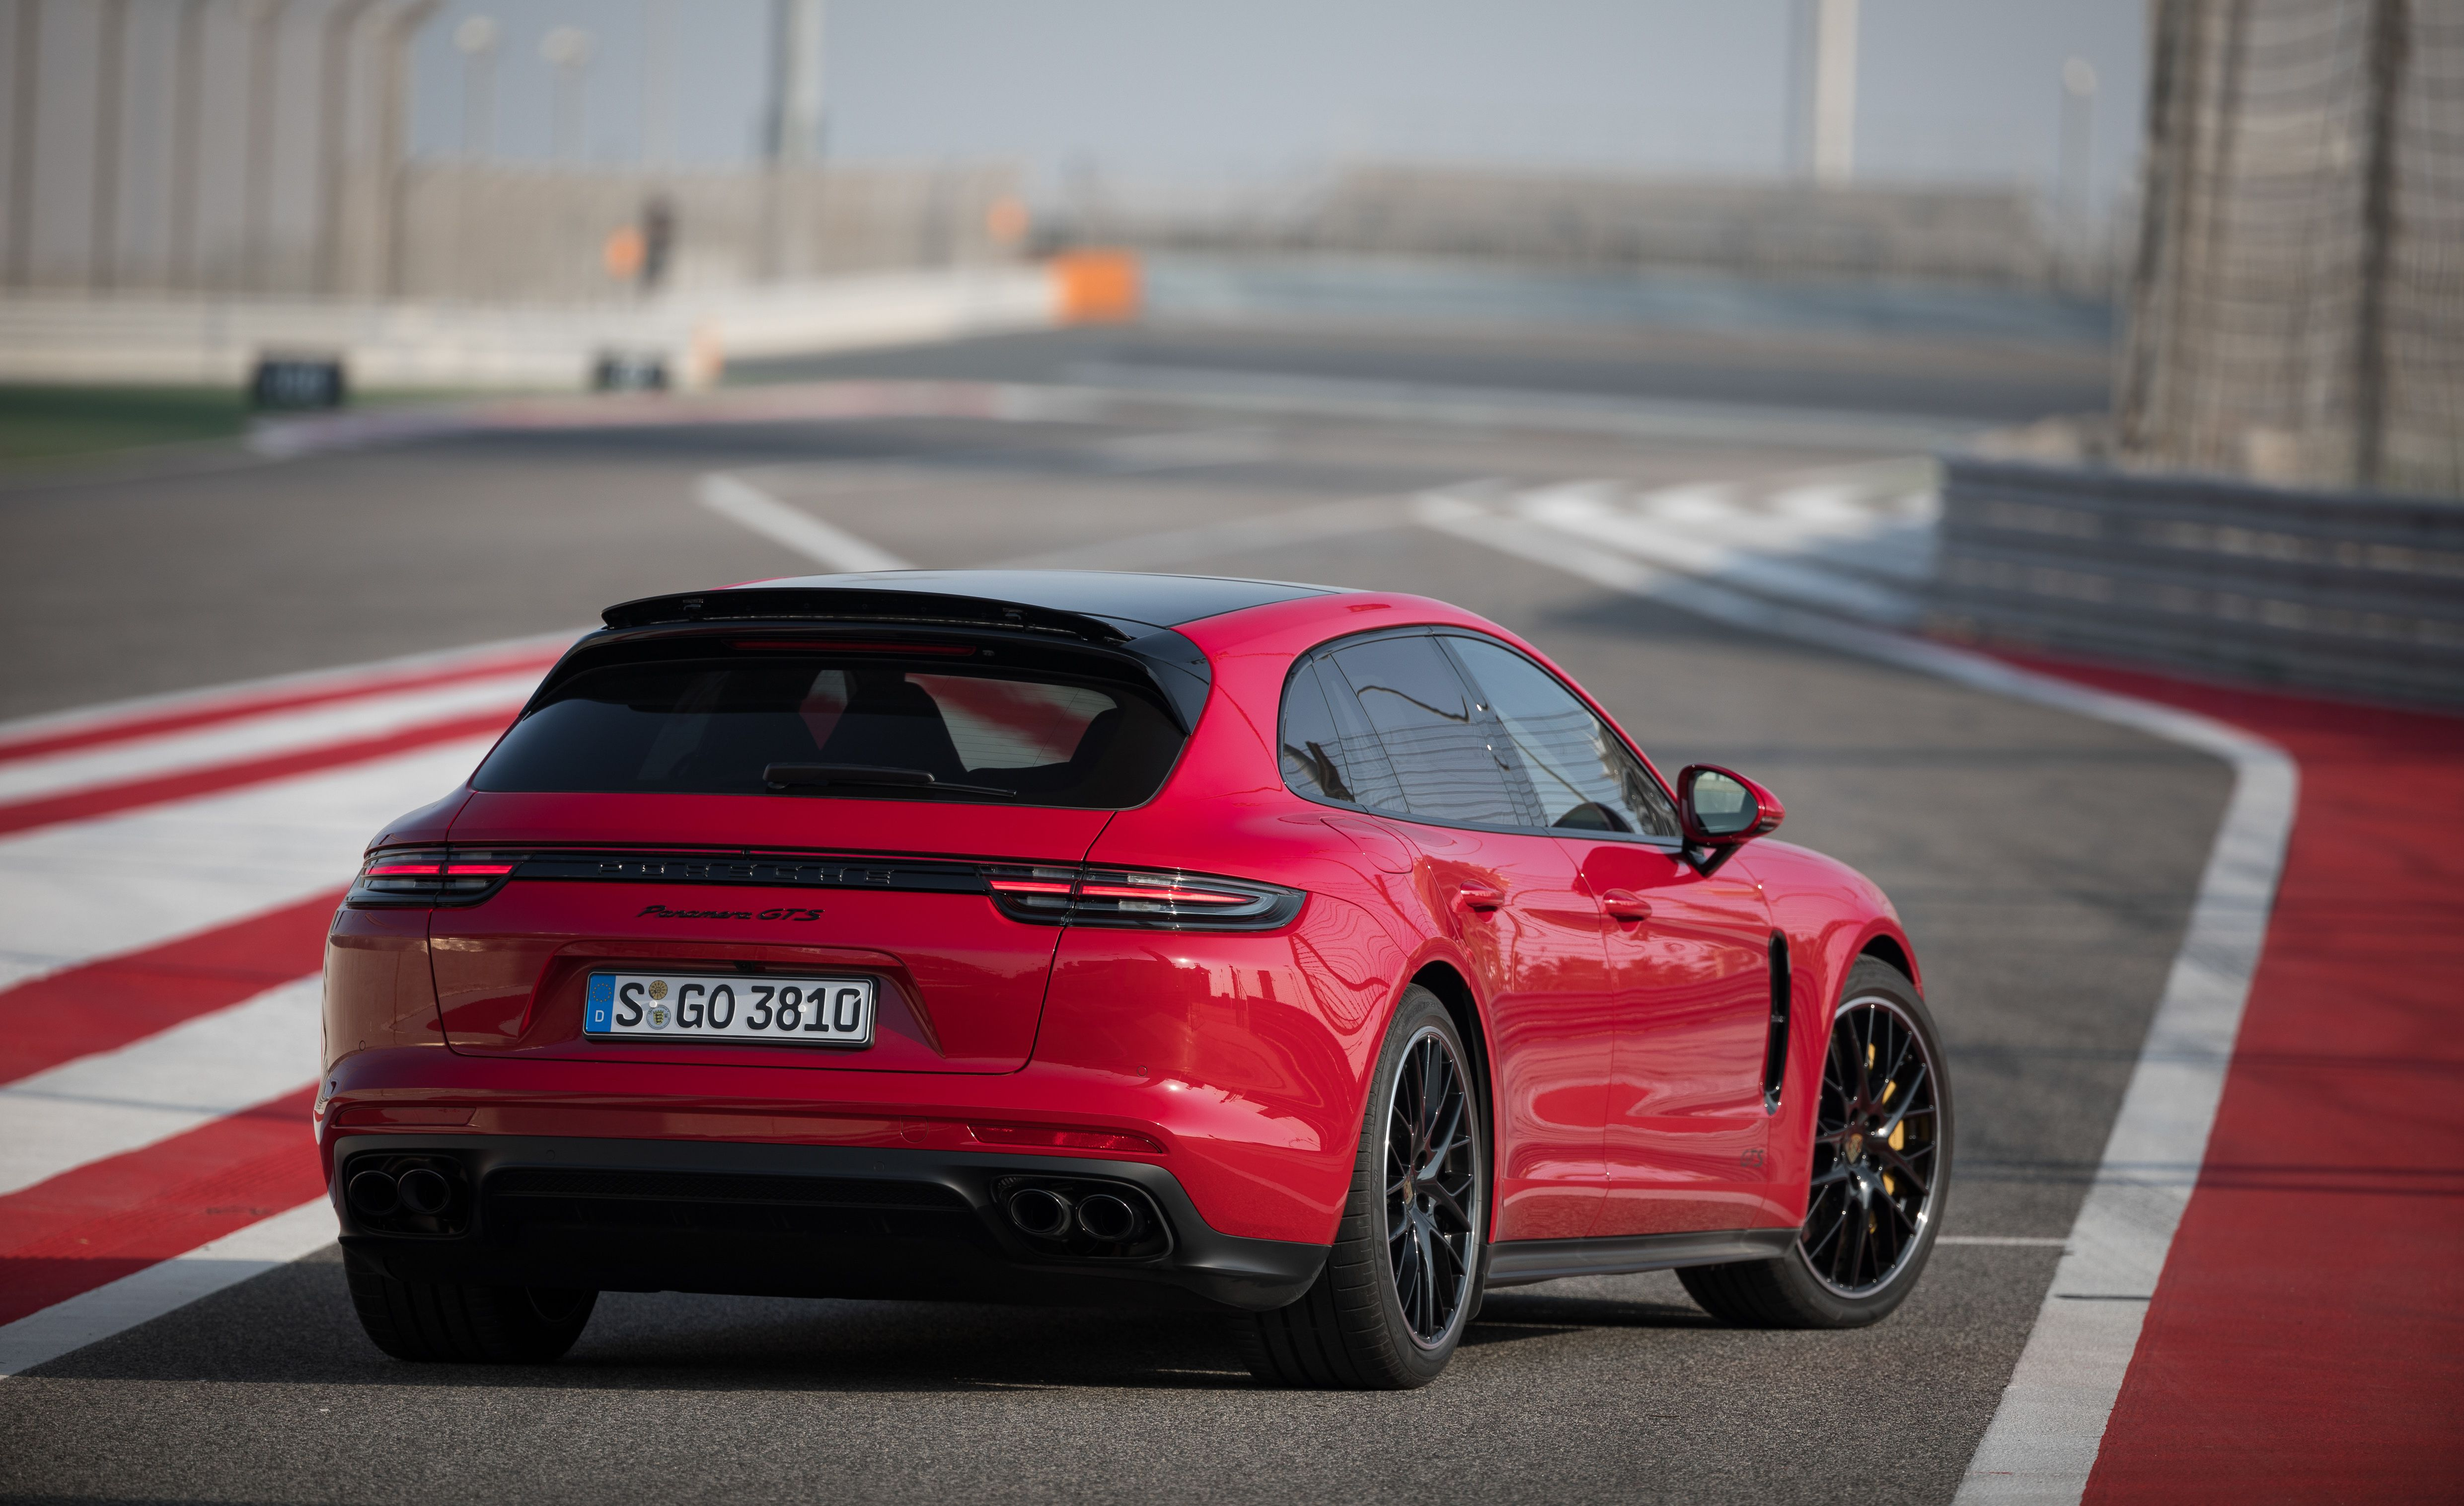 2019 Porsche Panamera GTS Sport Turismo Rear Three-Quarter Wallpapers (9)